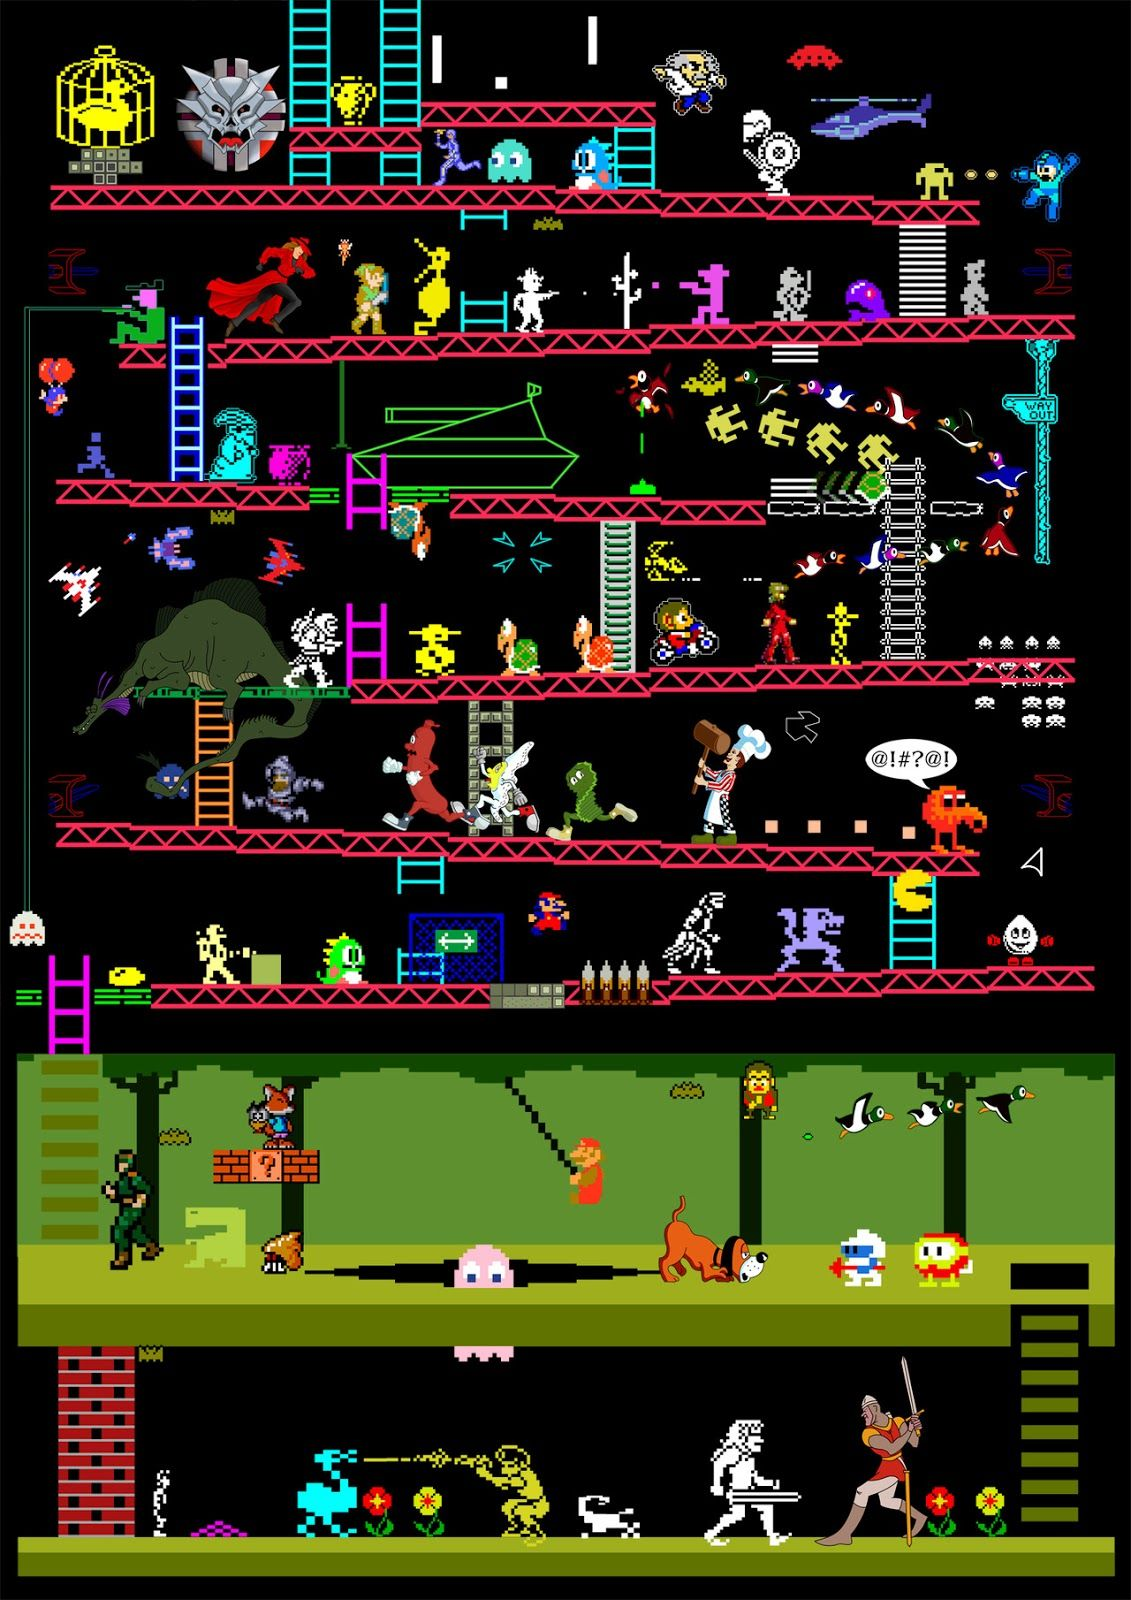 atari games list - Google Search   Vintage Toys ( too old )